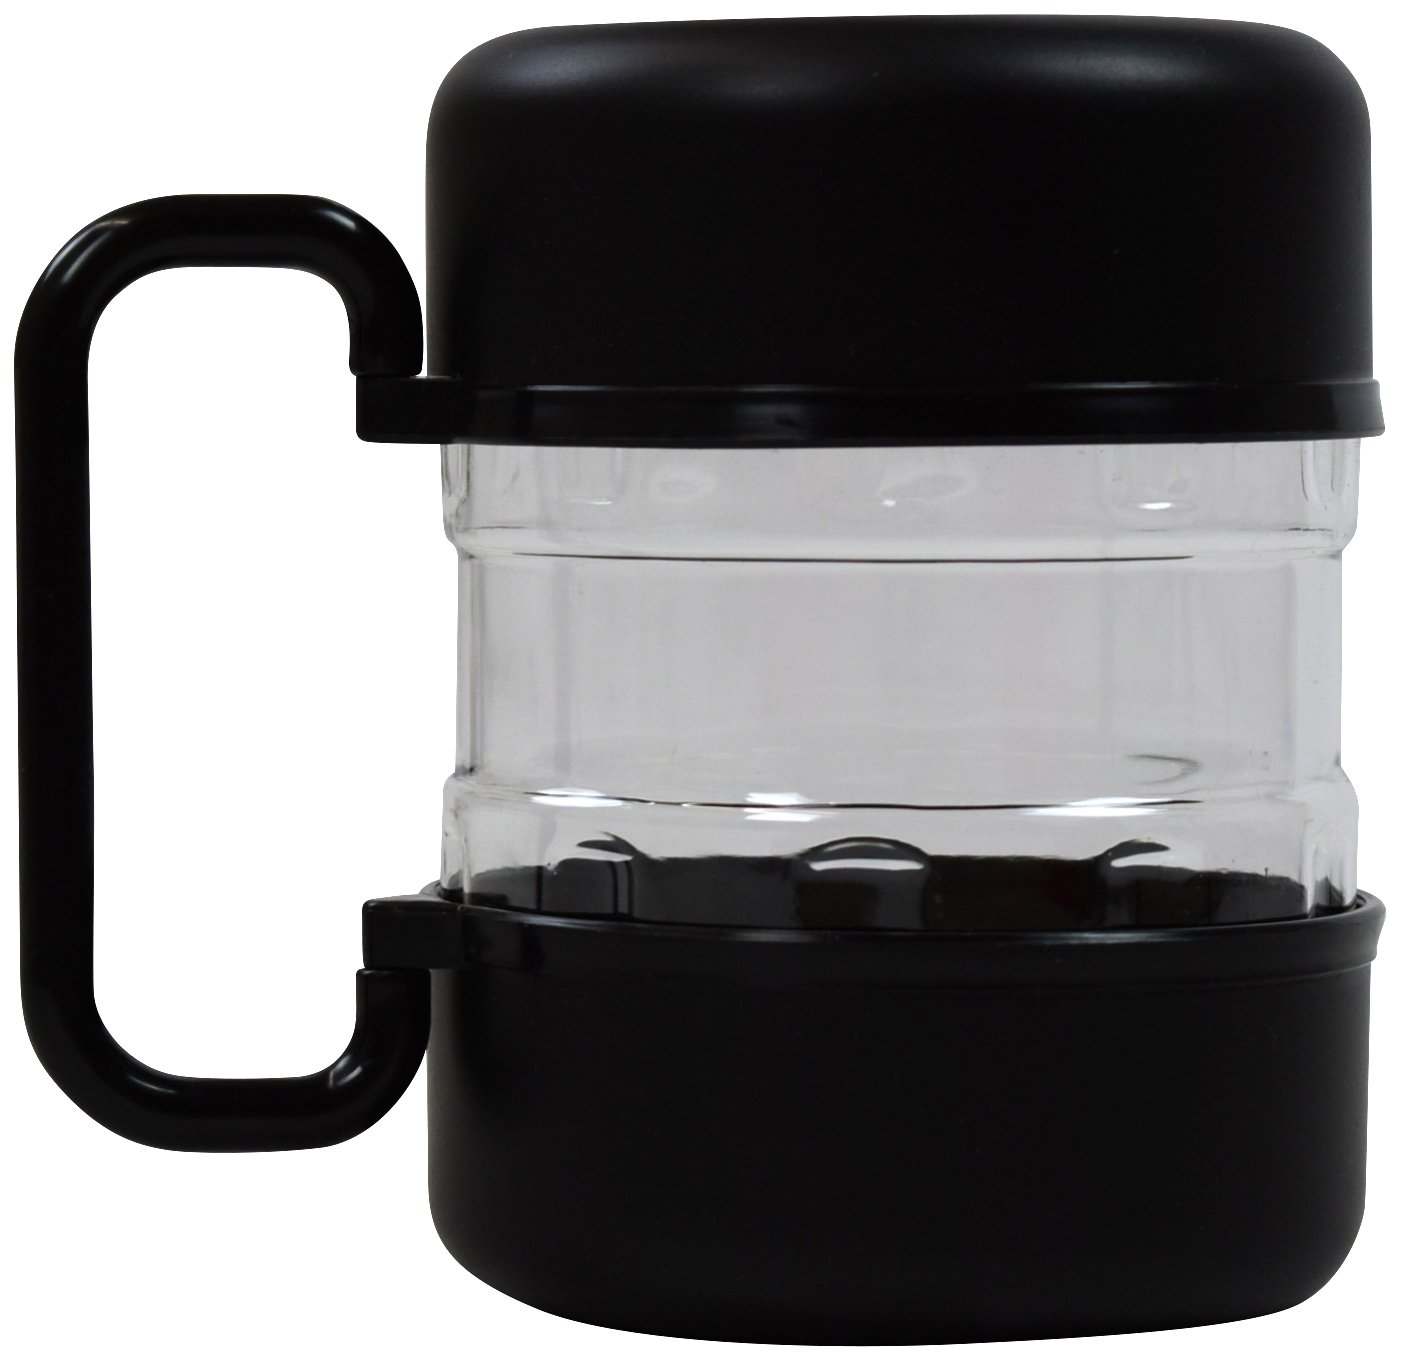 The JDP Co. Travel Dog Food Container with Detachable Travel Dog Bowls (Black)